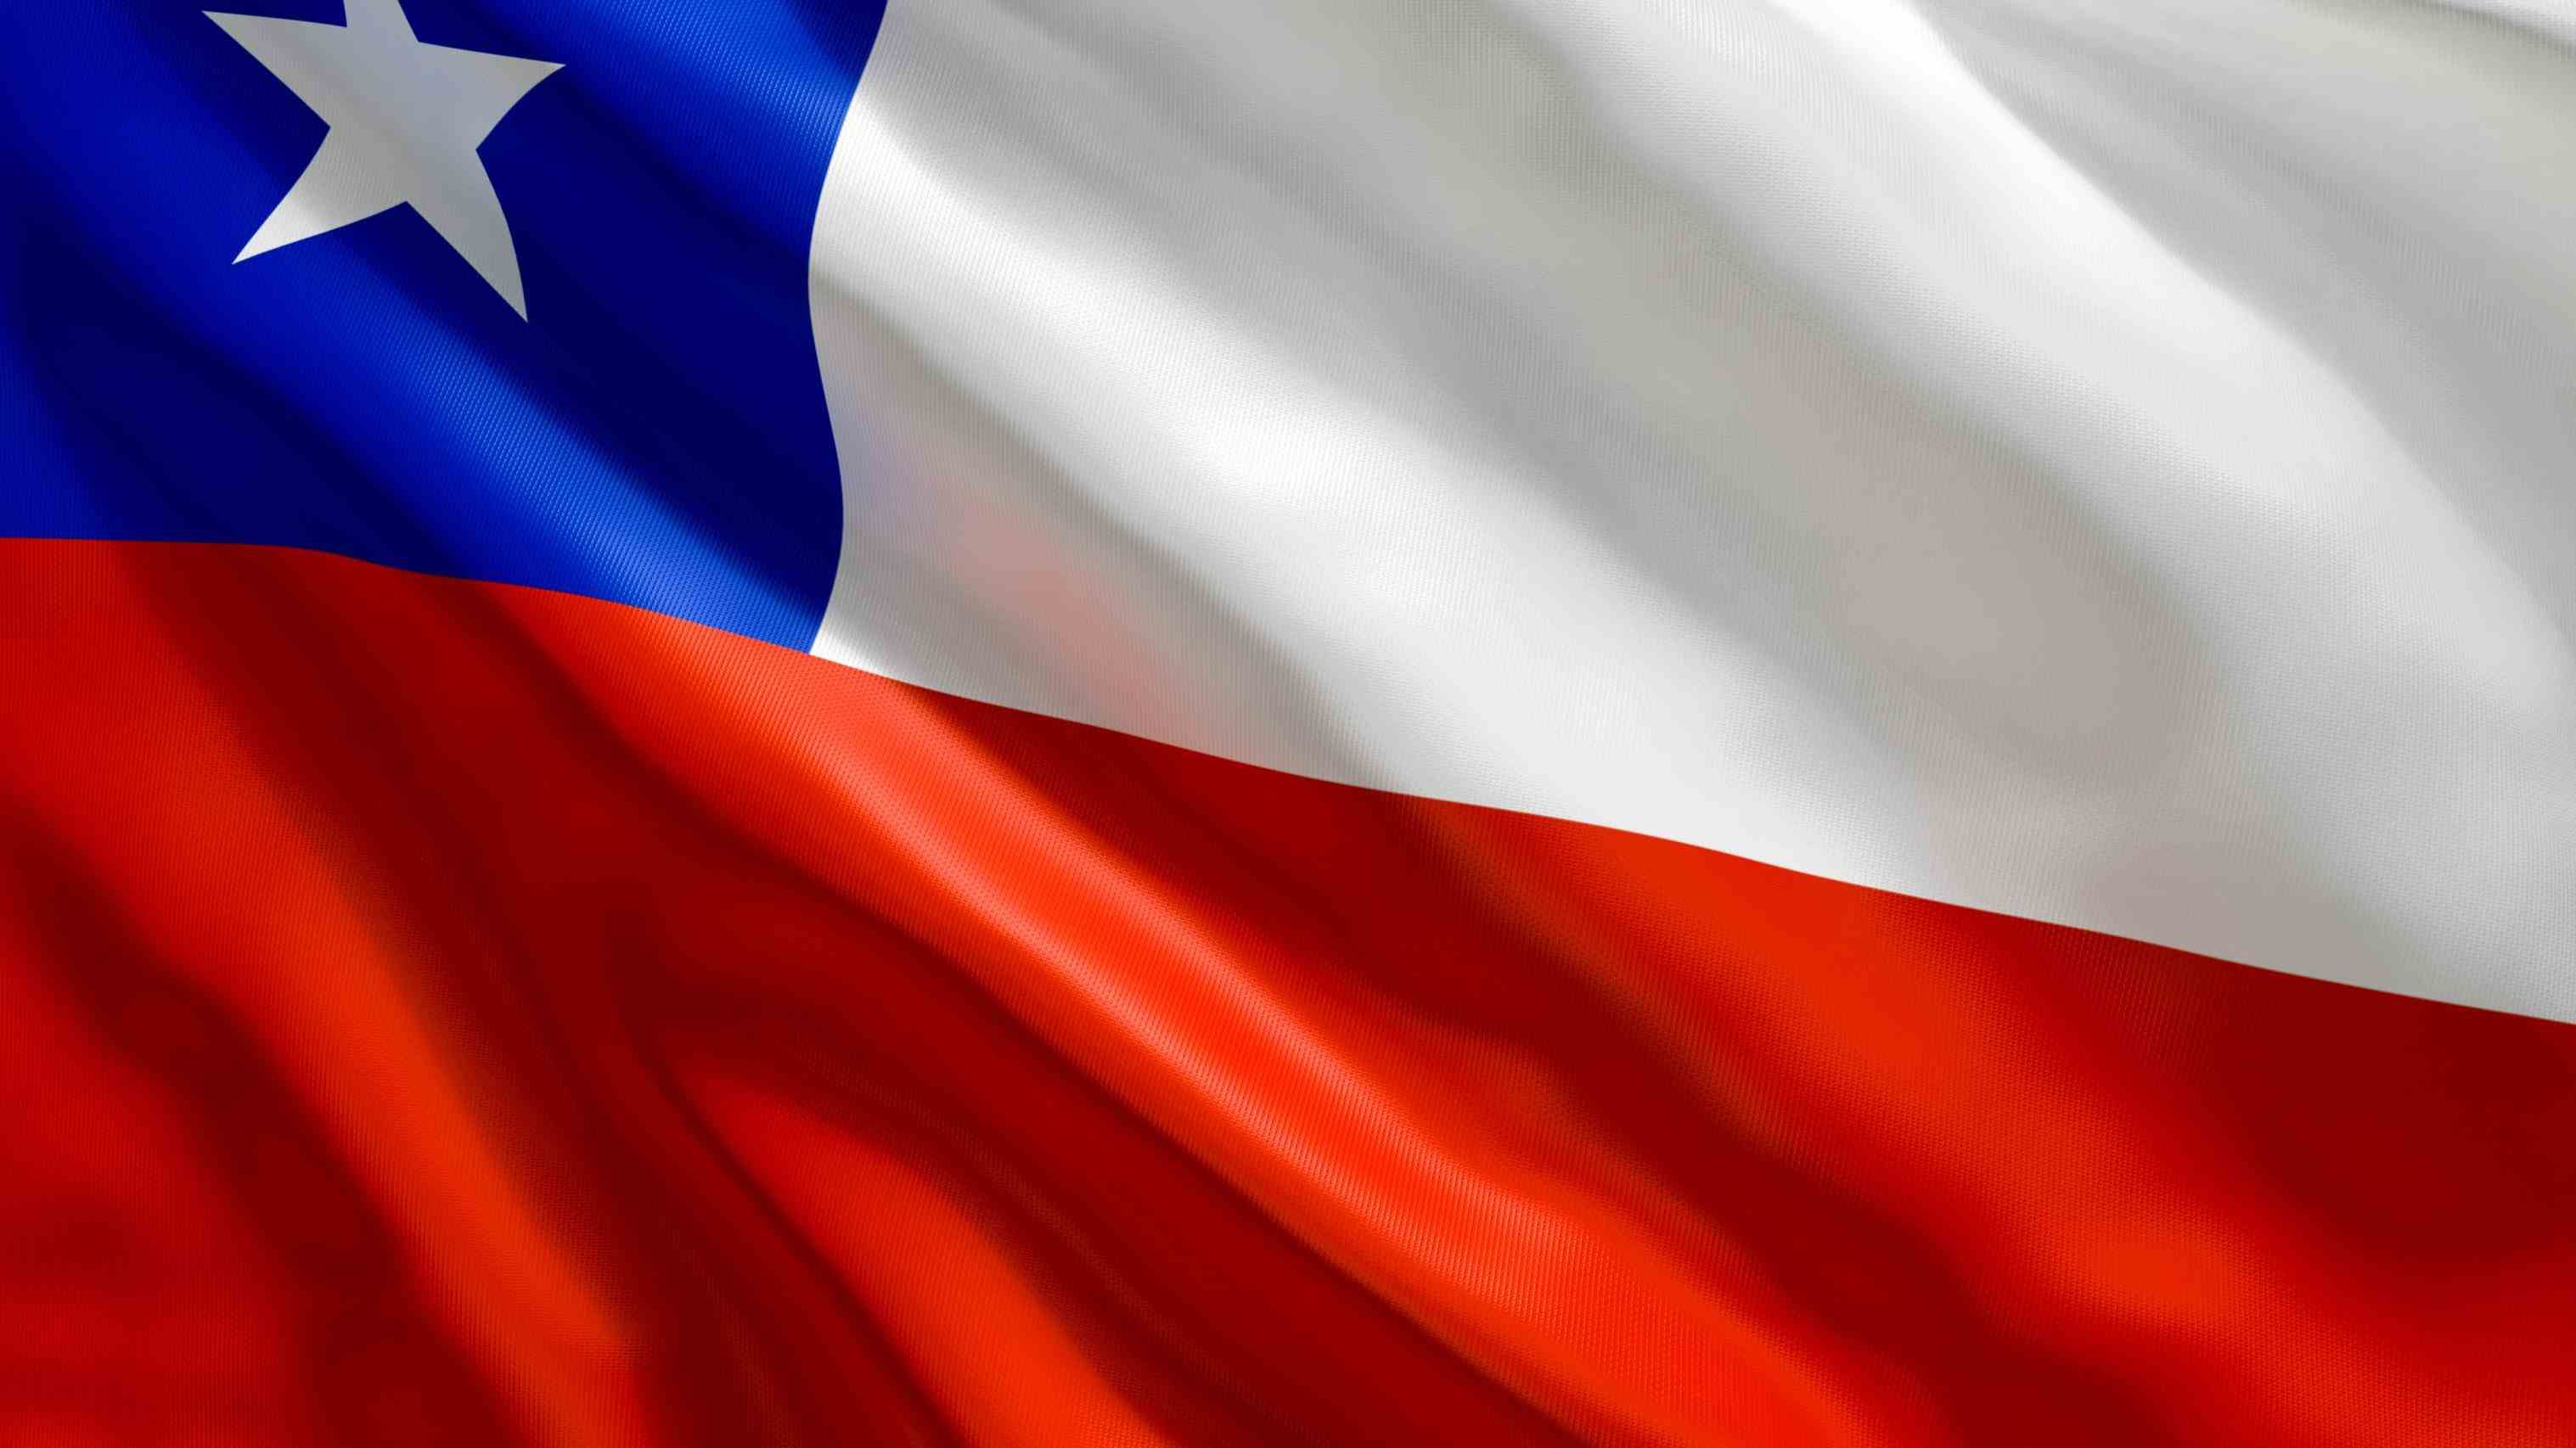 On Emaze On Santiago Chile Flag Emaze This Is A Picture Of The Argentina Itu Chile Flag Santiago Chile Flags Of The World